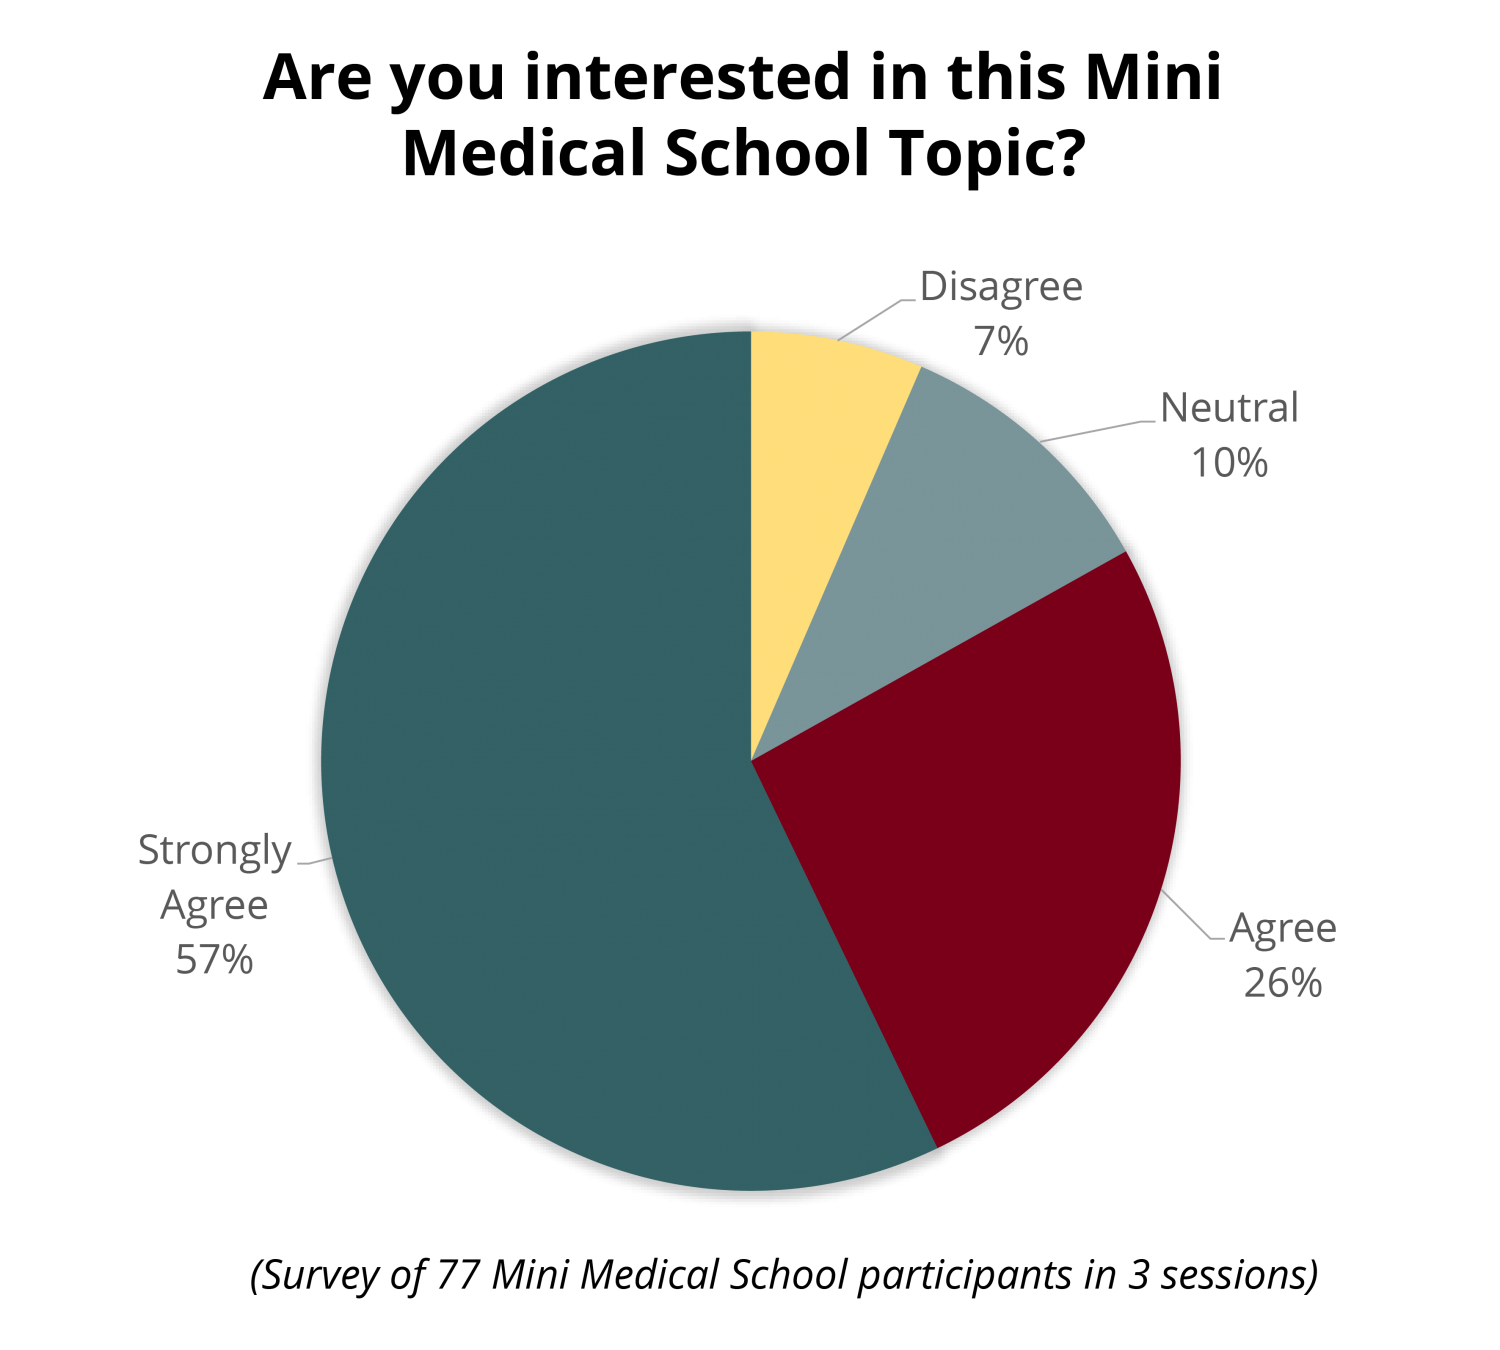 """Pie chart with question """"Are you interested in this Mini Medical School Topic?"""" 57% strongly agree, 26% agree, 10% feel neutral, 7% disagree."""